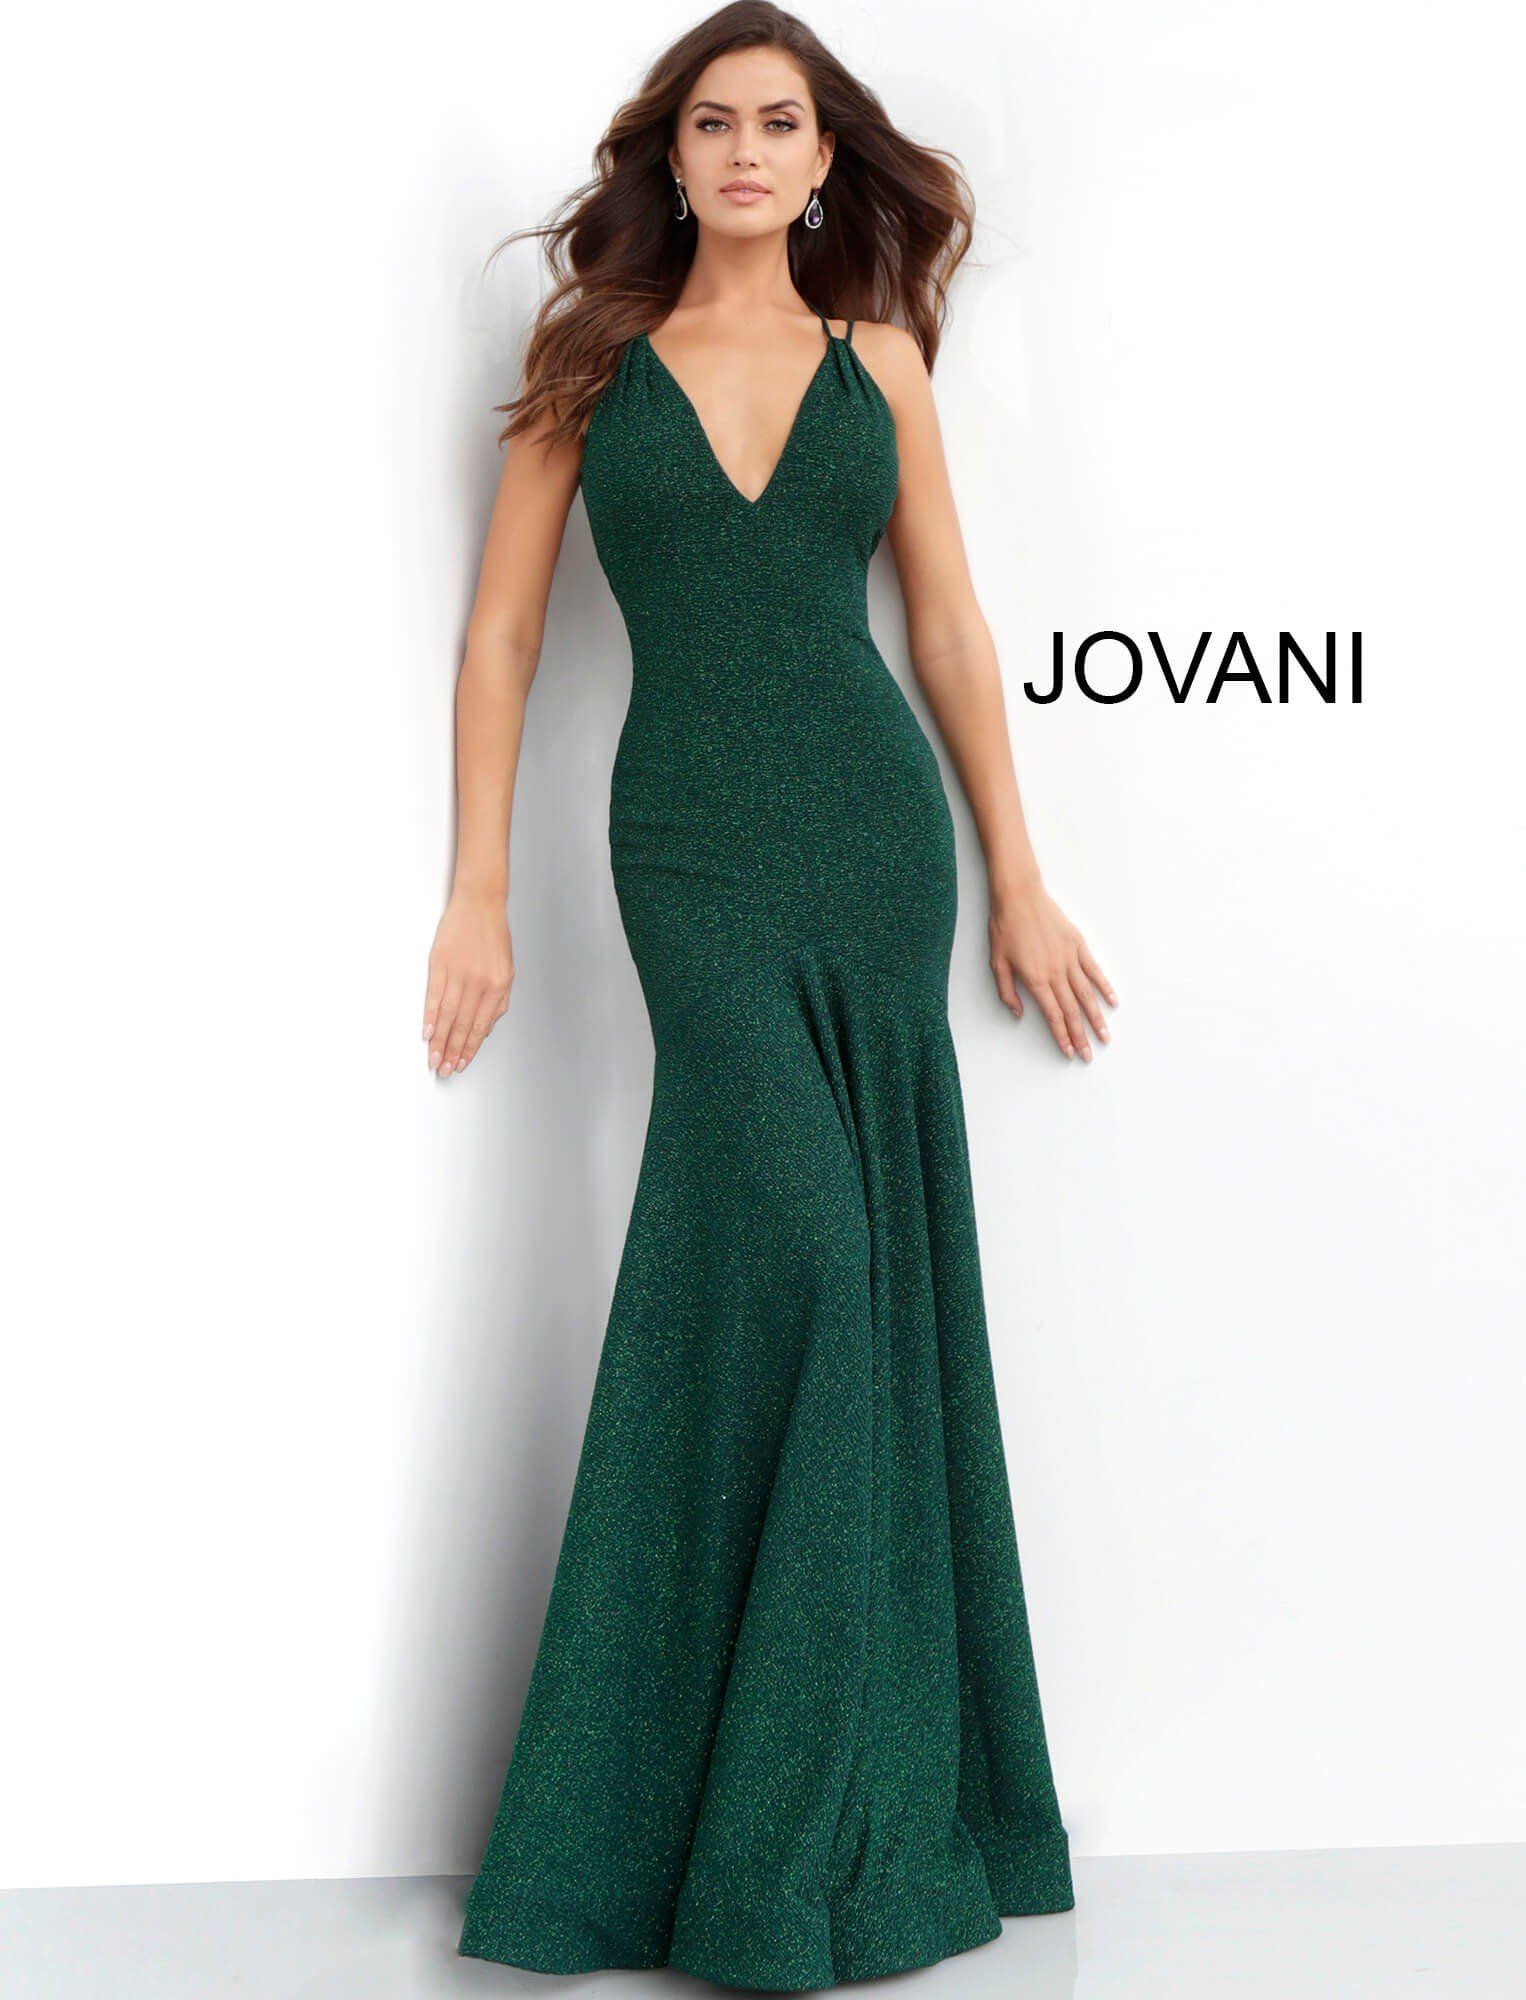 4c419530982 Emerald Backless V Neck Glitter Prom Dress 60214. Available Now . . .  prom   promdress  promdresses  eveningwear  eveningweardress  dress  dresses   prom2019 ...